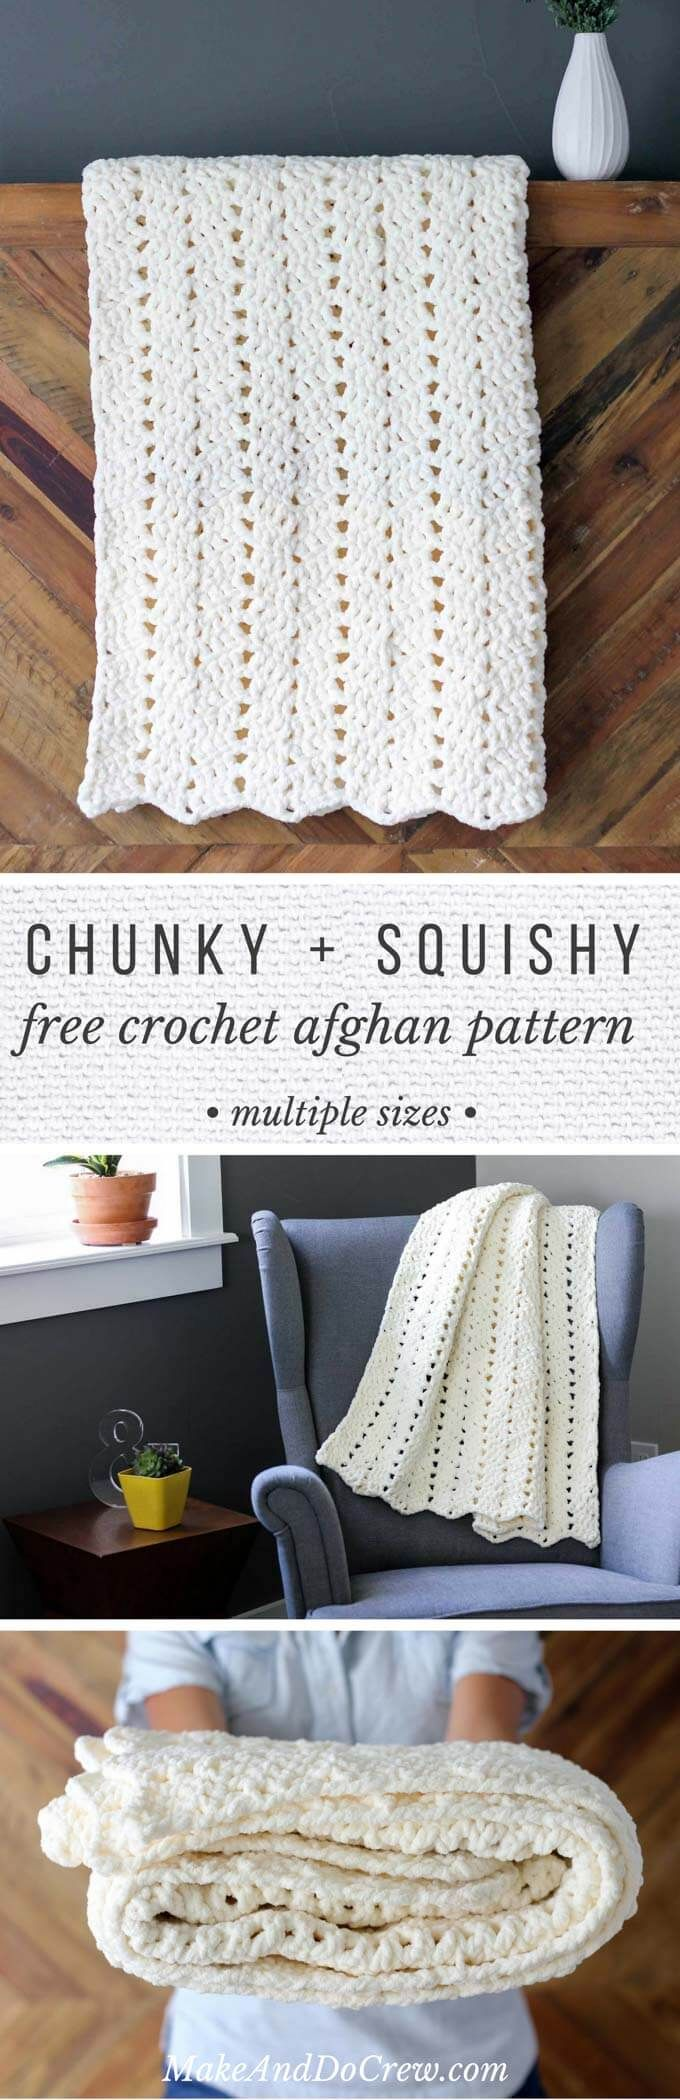 This free chunky crochet blanket pattern makes a perfect timeless baby gift, but once you feel how soft it is, there's no way you won't want to make one for yourself too! The pattern explains how to make larger sizes and it works up super quickly in bulky Bernat Blanket Yarn. Great pattern for beginners--looks fancy, but isn't hard to figure out!